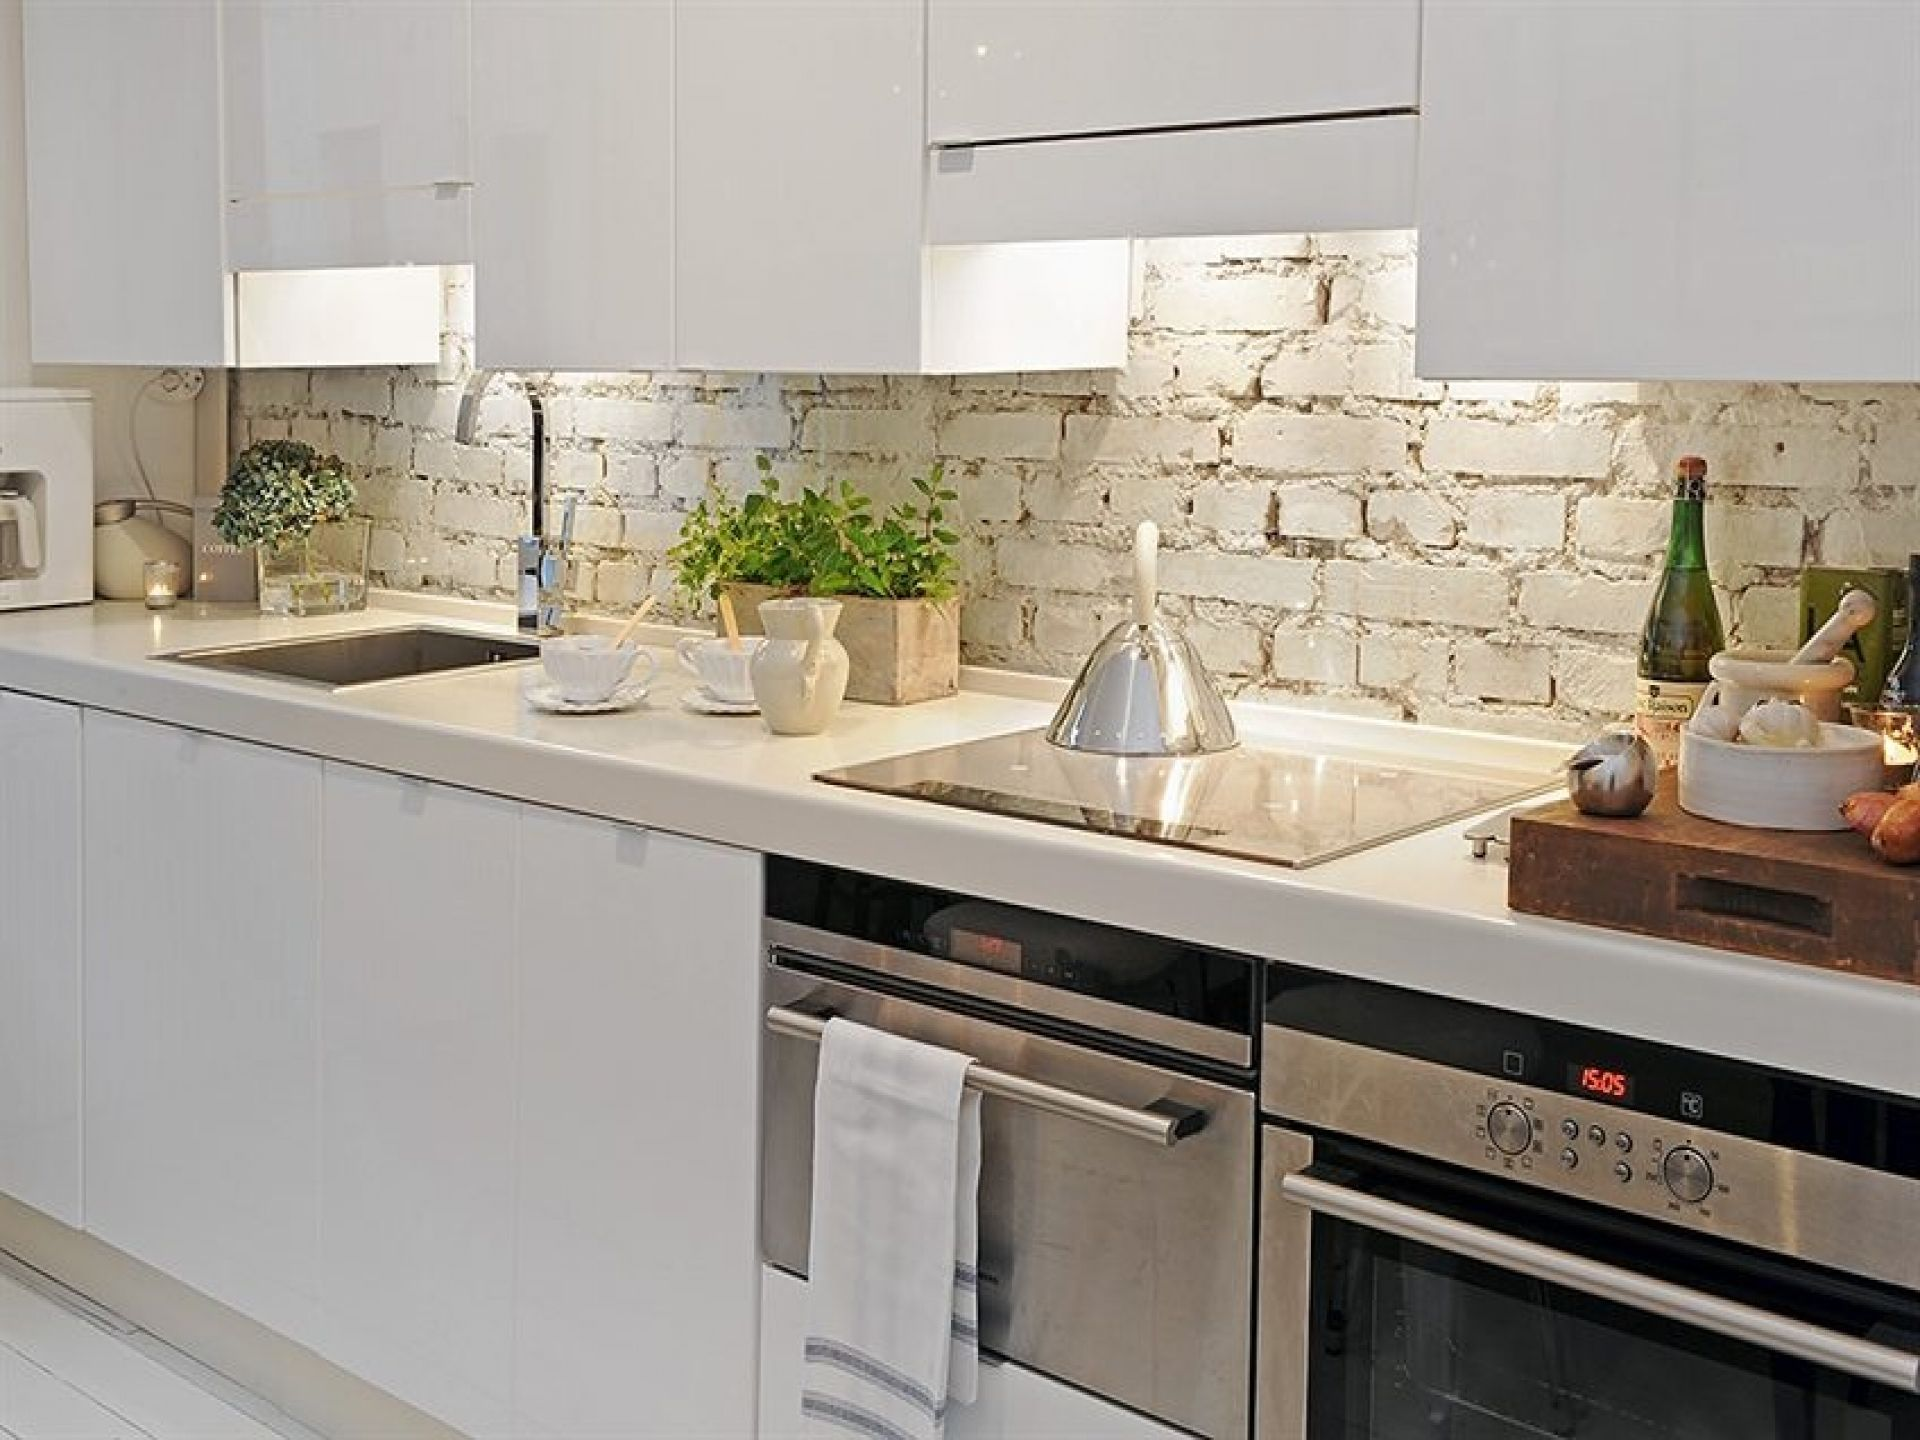 Sweet Hard Wood Modern Kitchen Cabinetry Set In White Feat Rustic